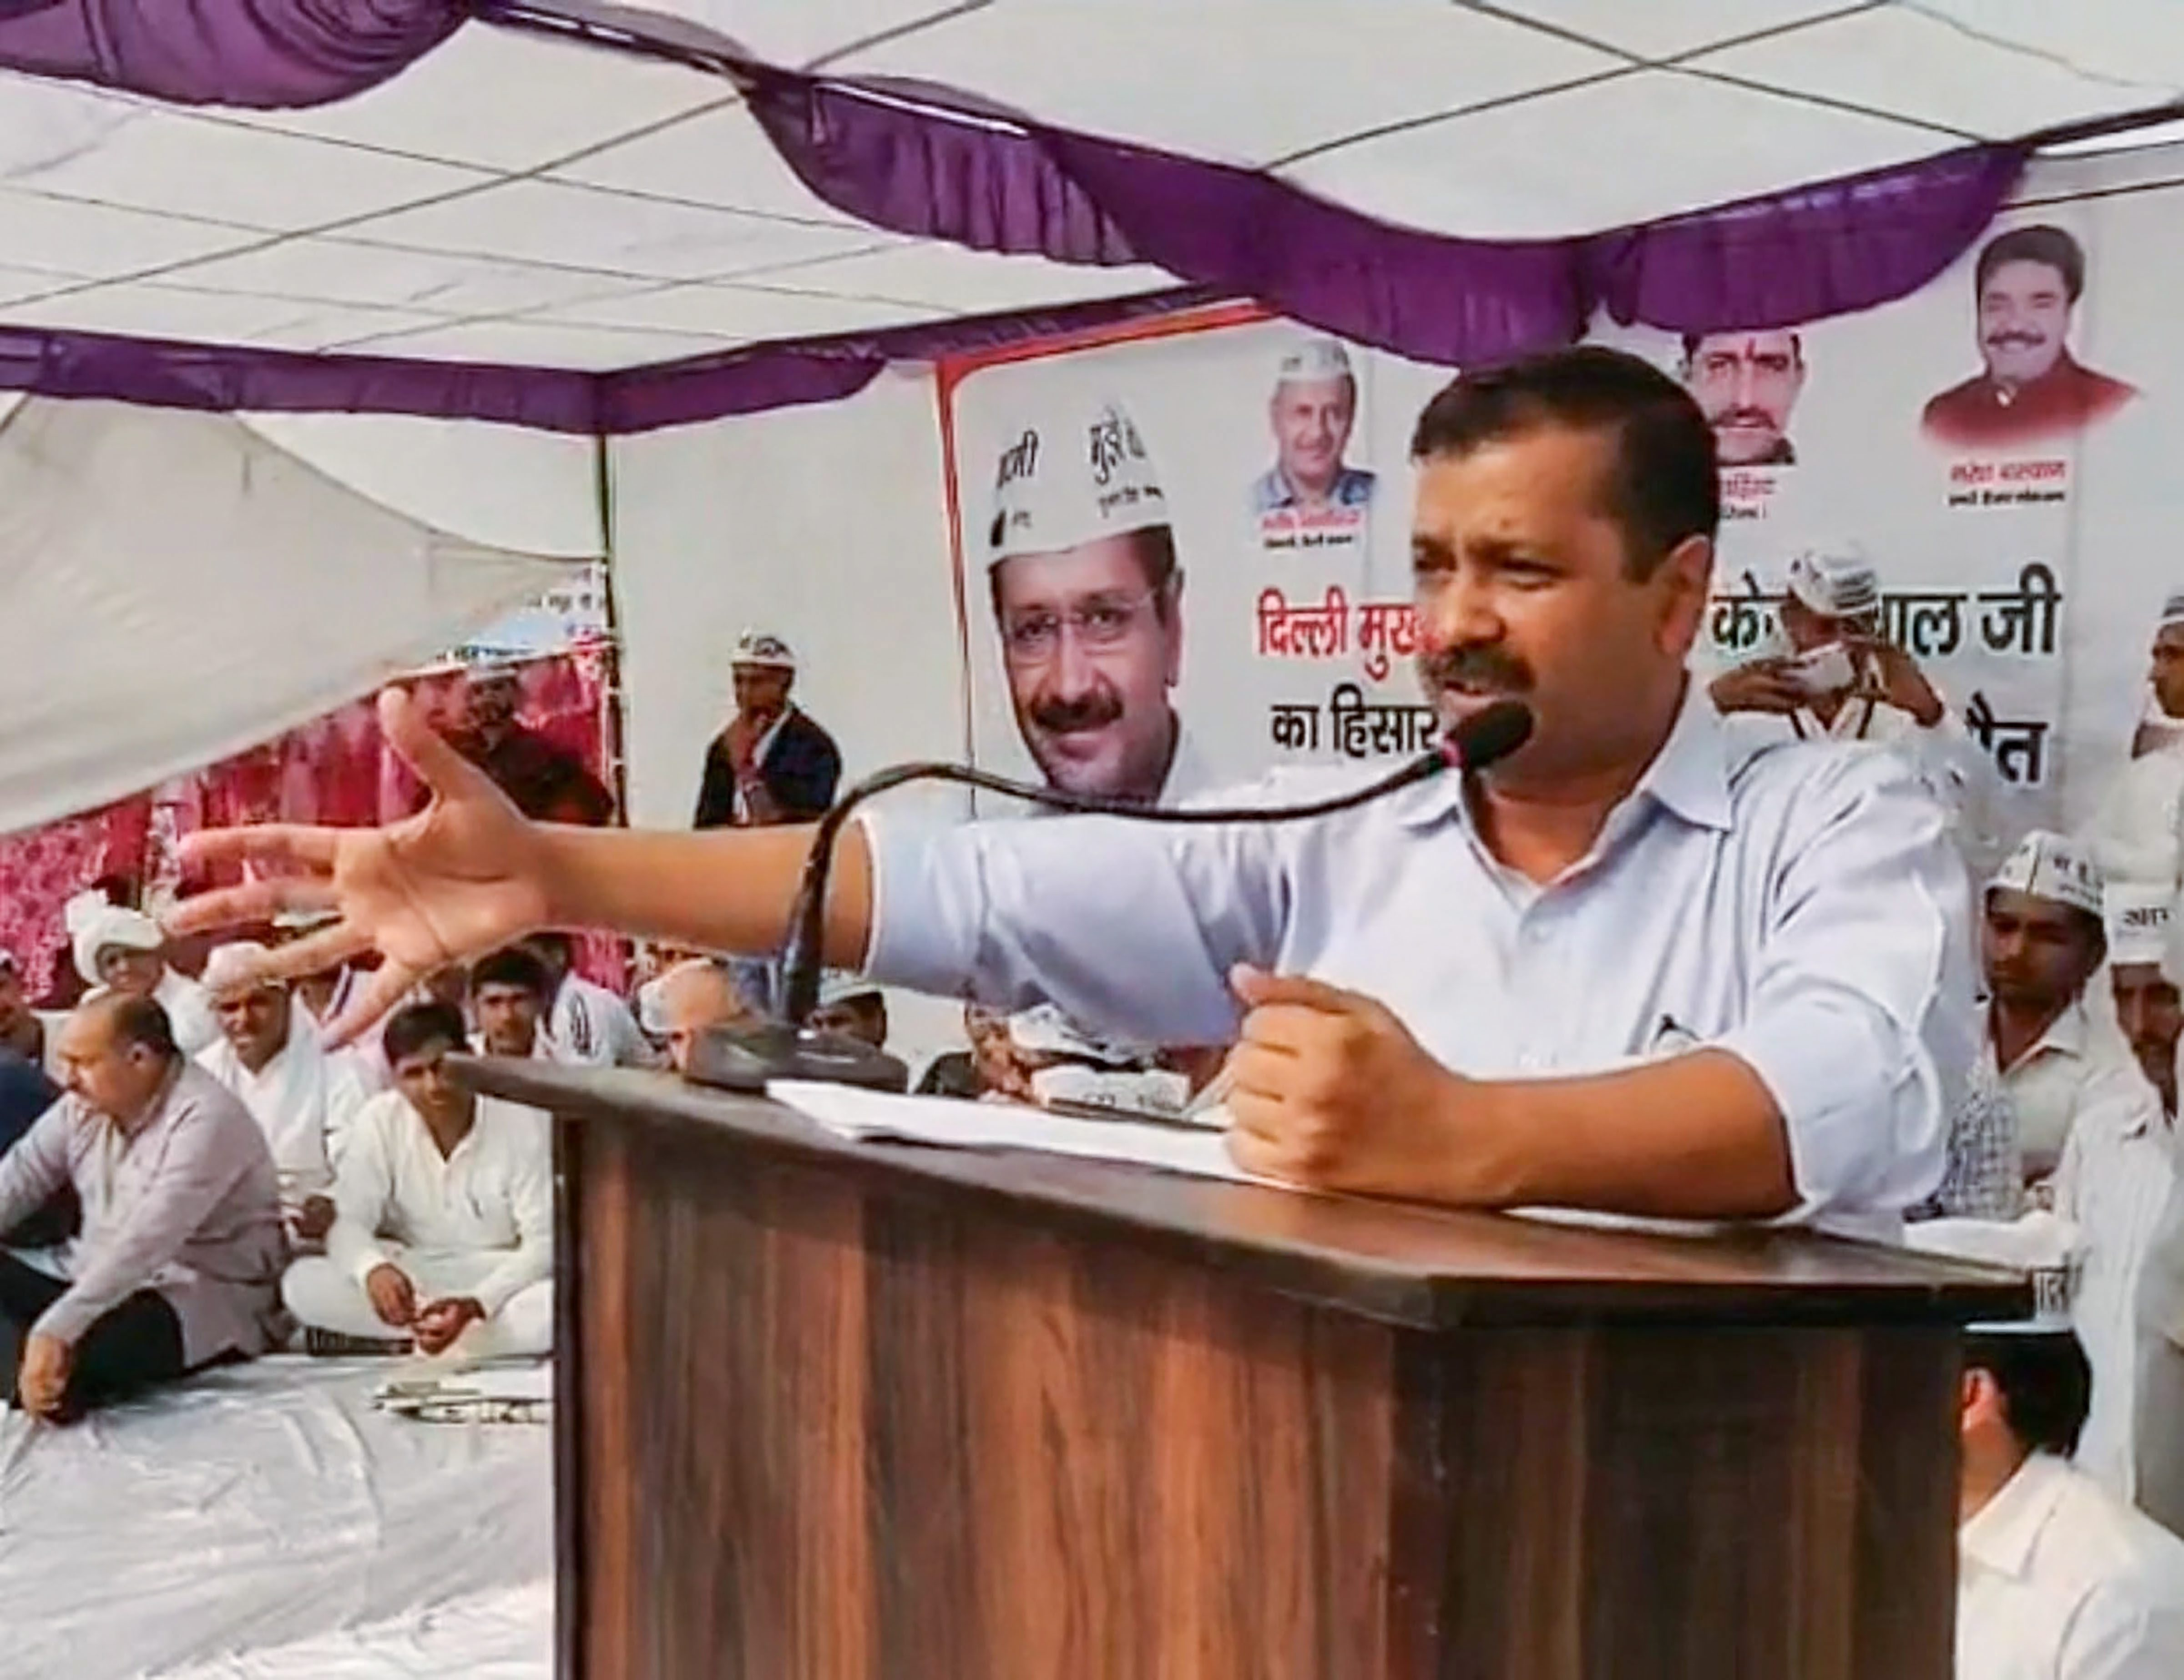 Delhi Chief Minister Arvind Kejriwal addresses a public meeting in Chanaut village of Hisar district - PTI